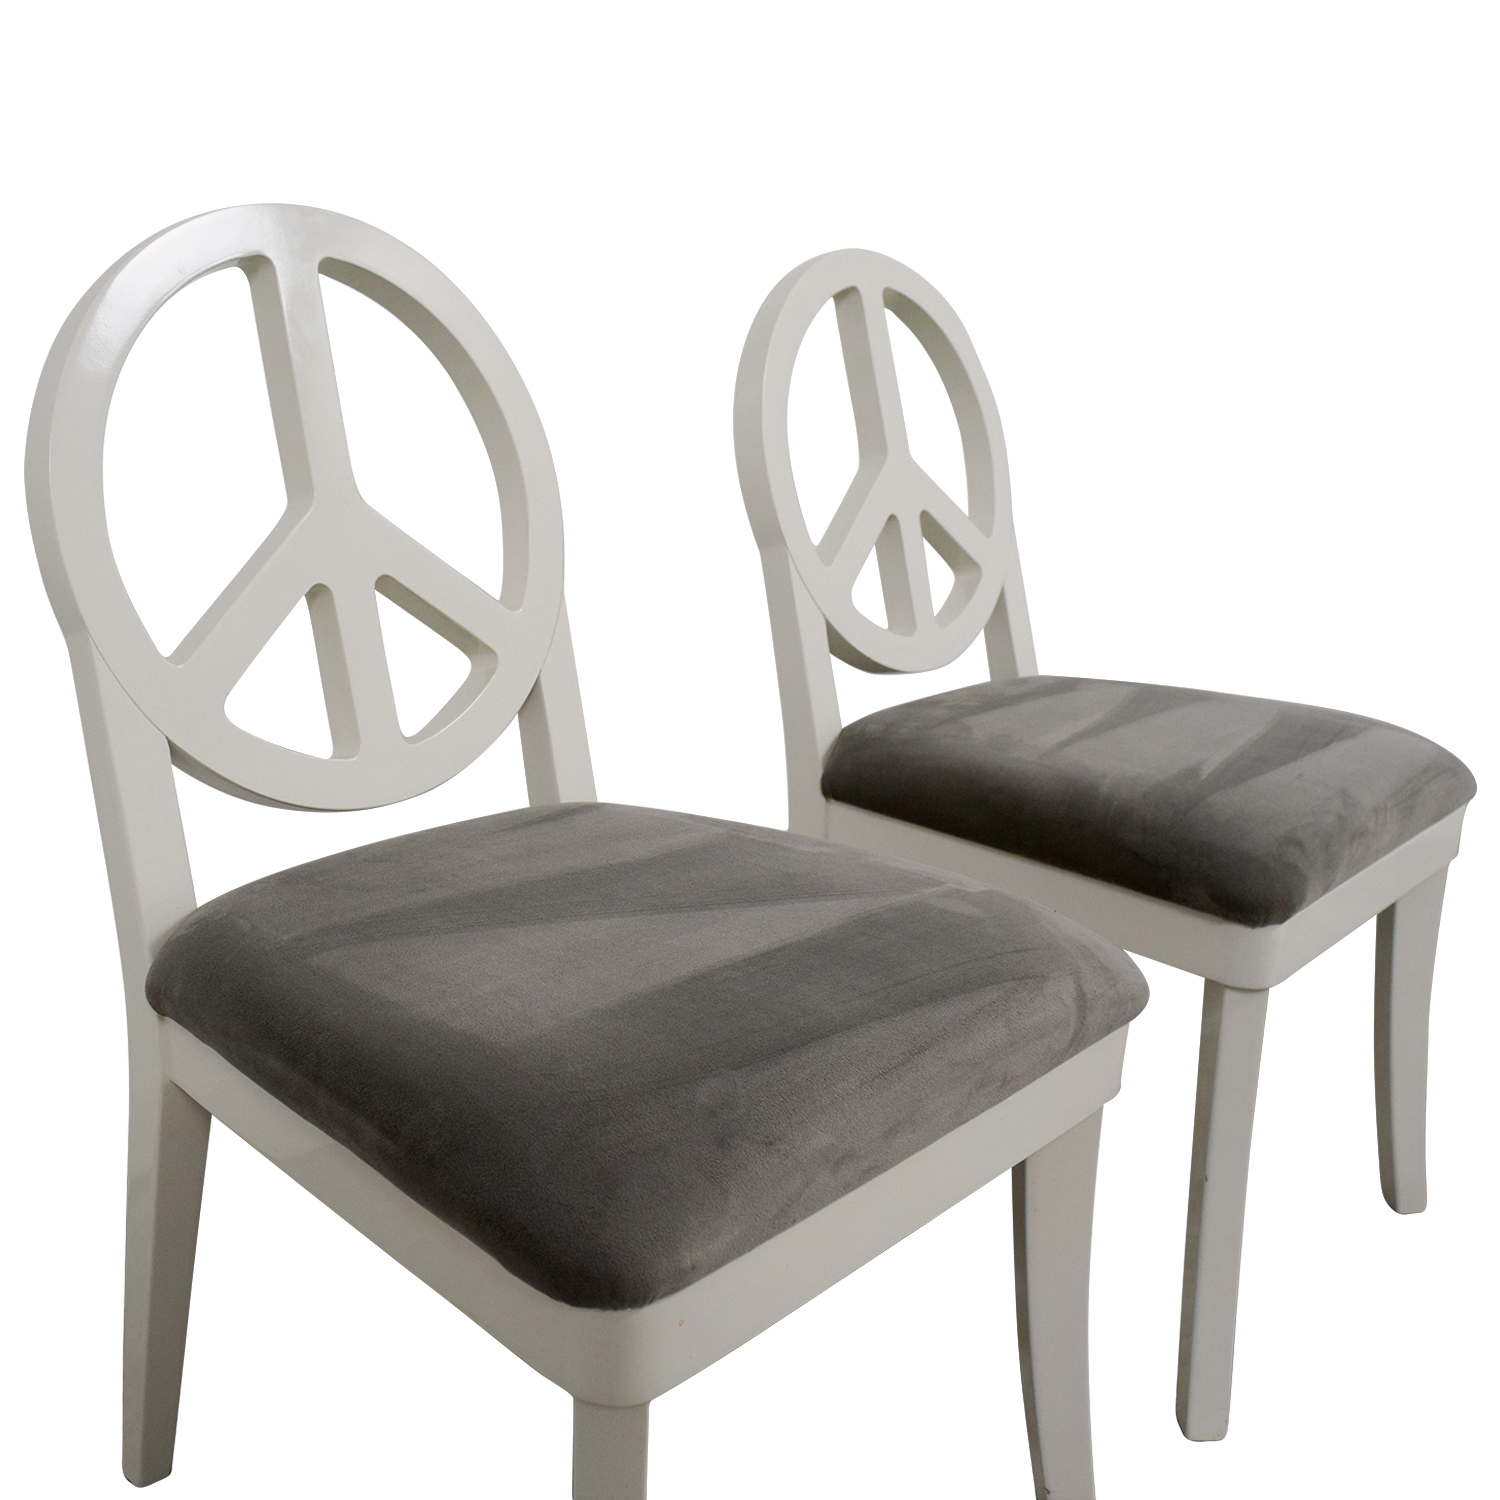 Genial ... Happy Chic By Jonathan Adler Happy Chic By Jonathan Adler White And  Grey Peace Sign Accent ...